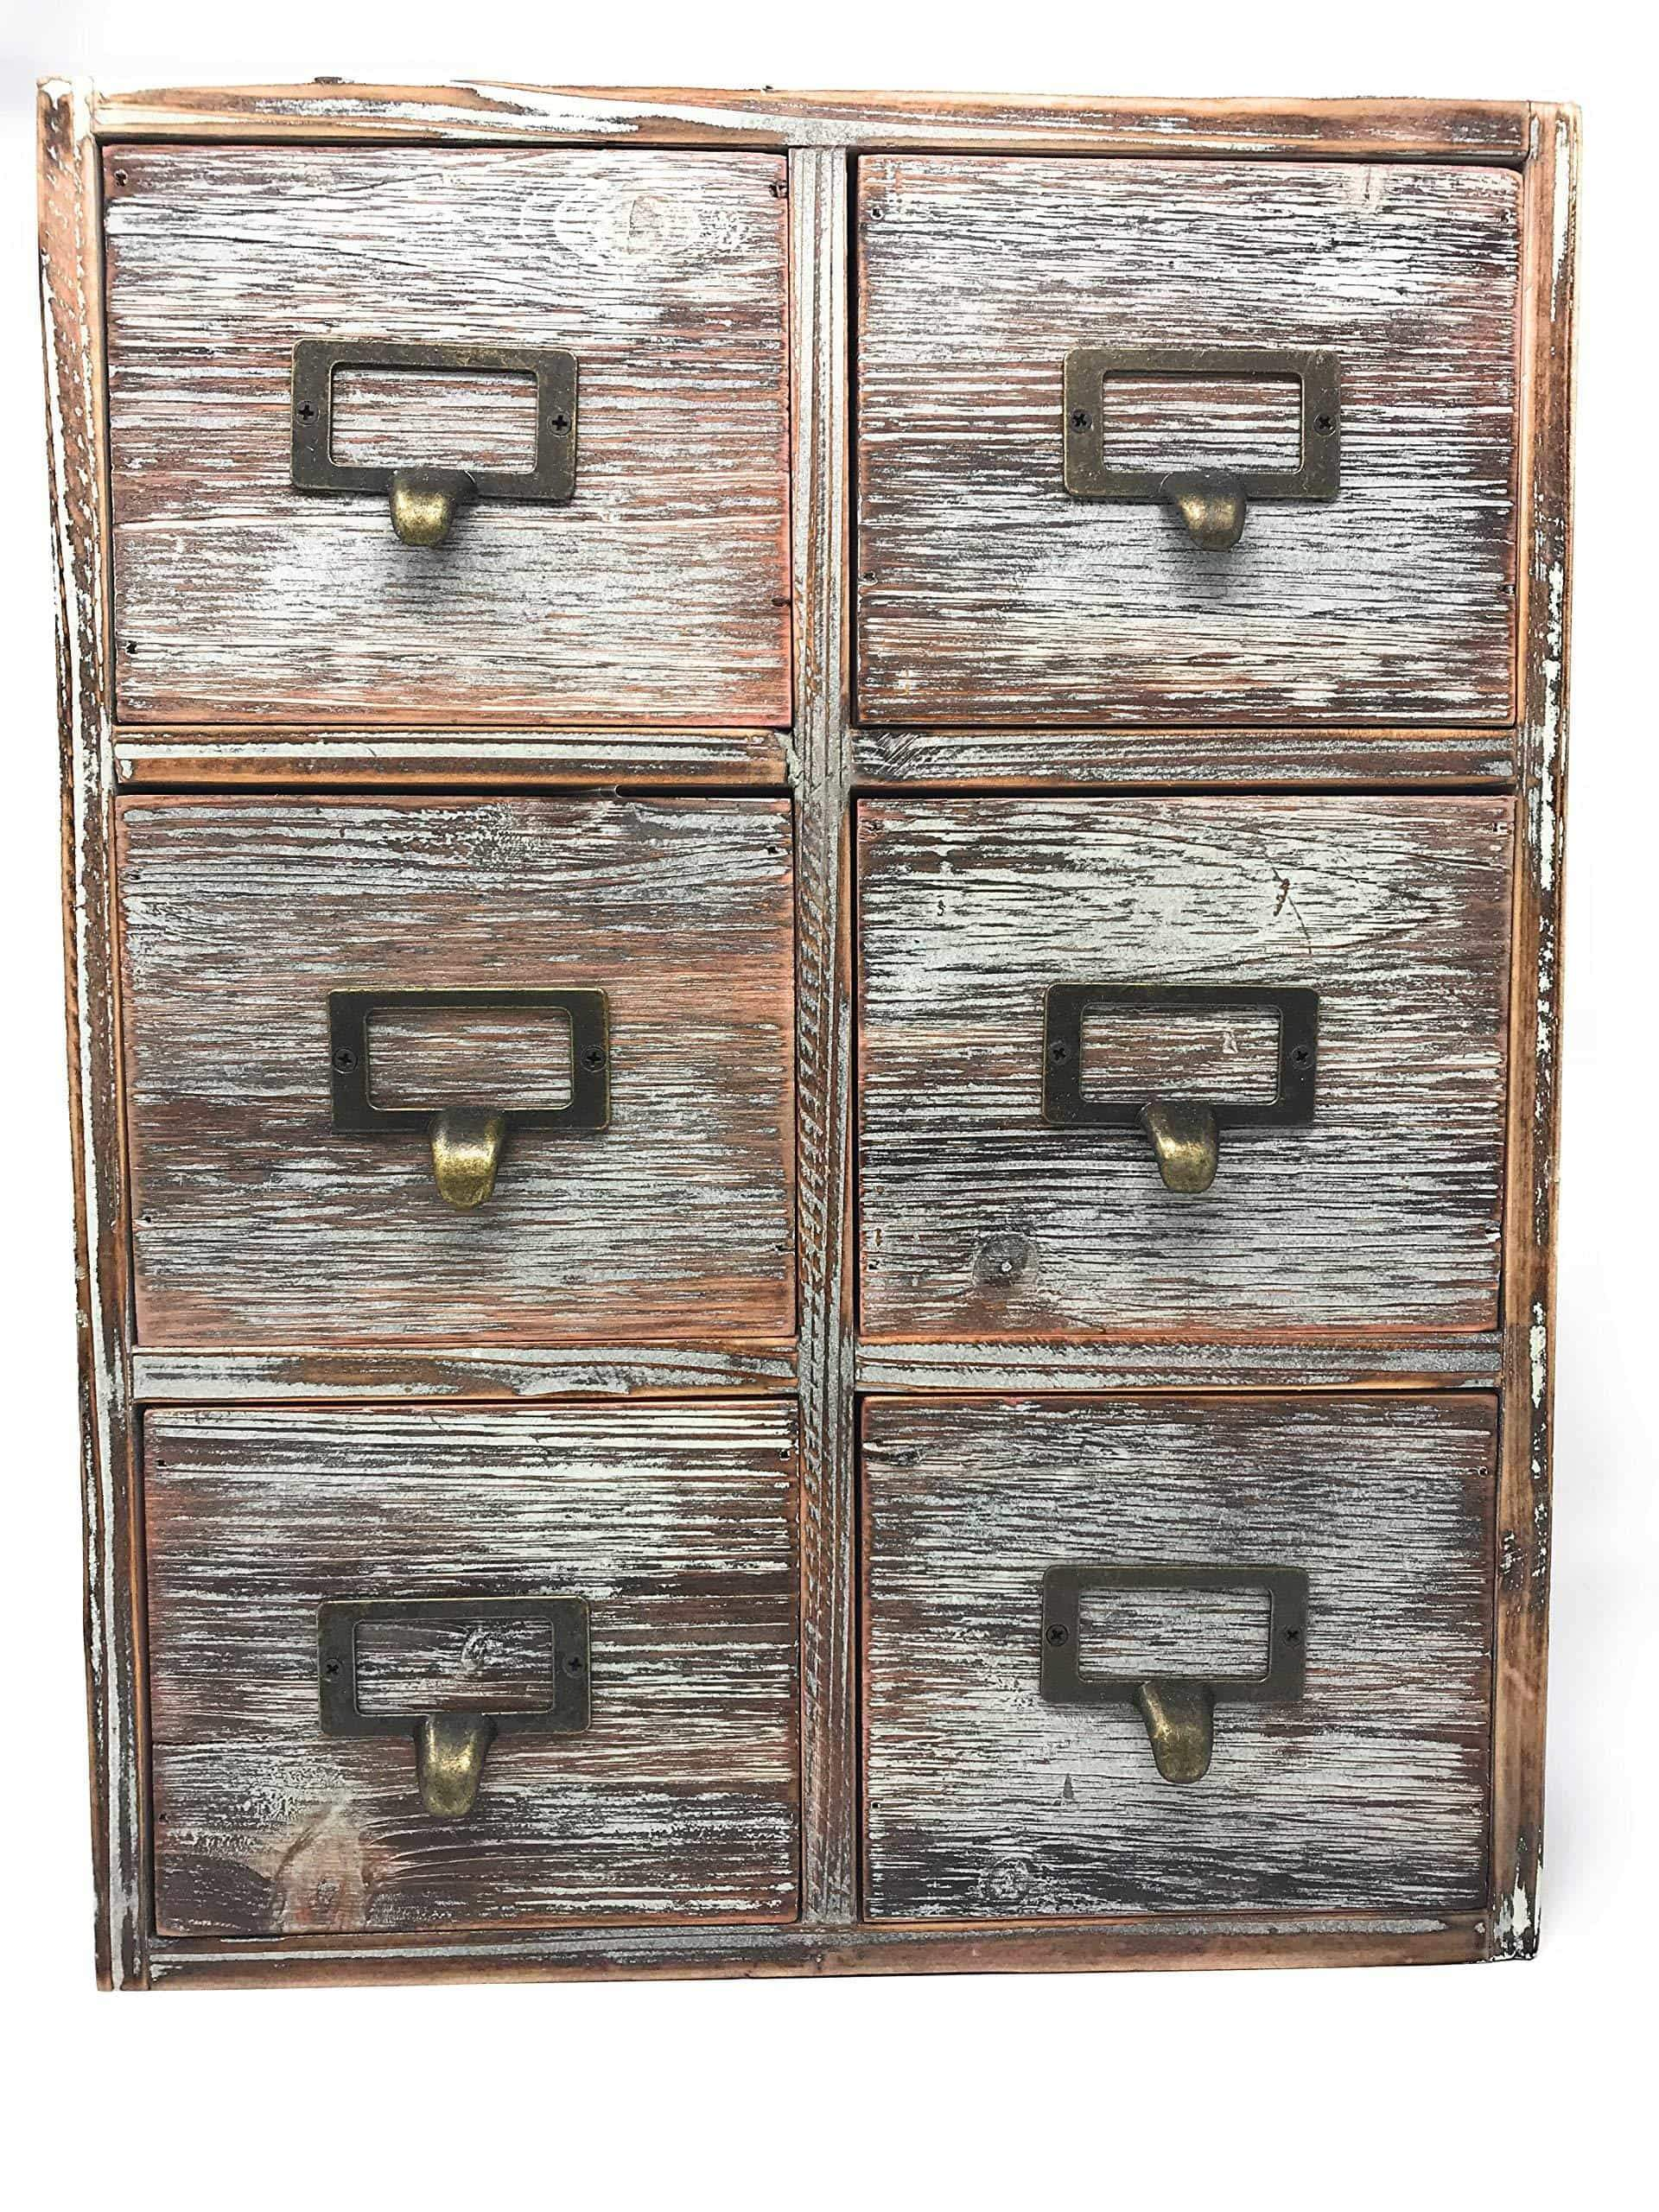 The best farmhouse decor desk organizer storage cabinet bathroom home shelves kitchen living room bedroom furniture apothecary drawers rustic wood distressed finish